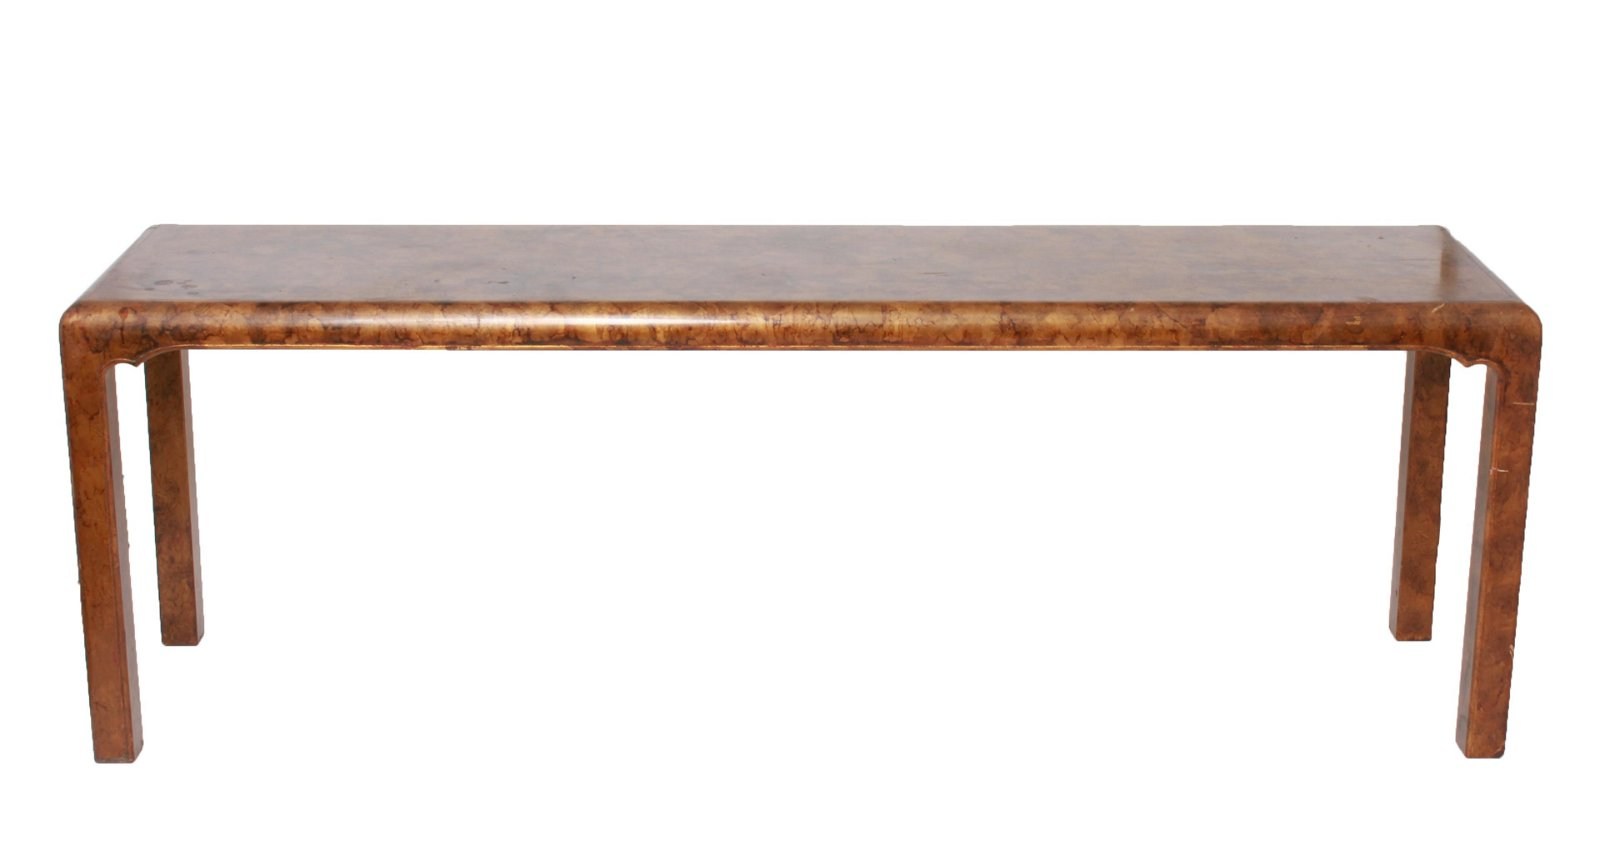 Lacquered Wood Chinoiserie Console Sofa Table